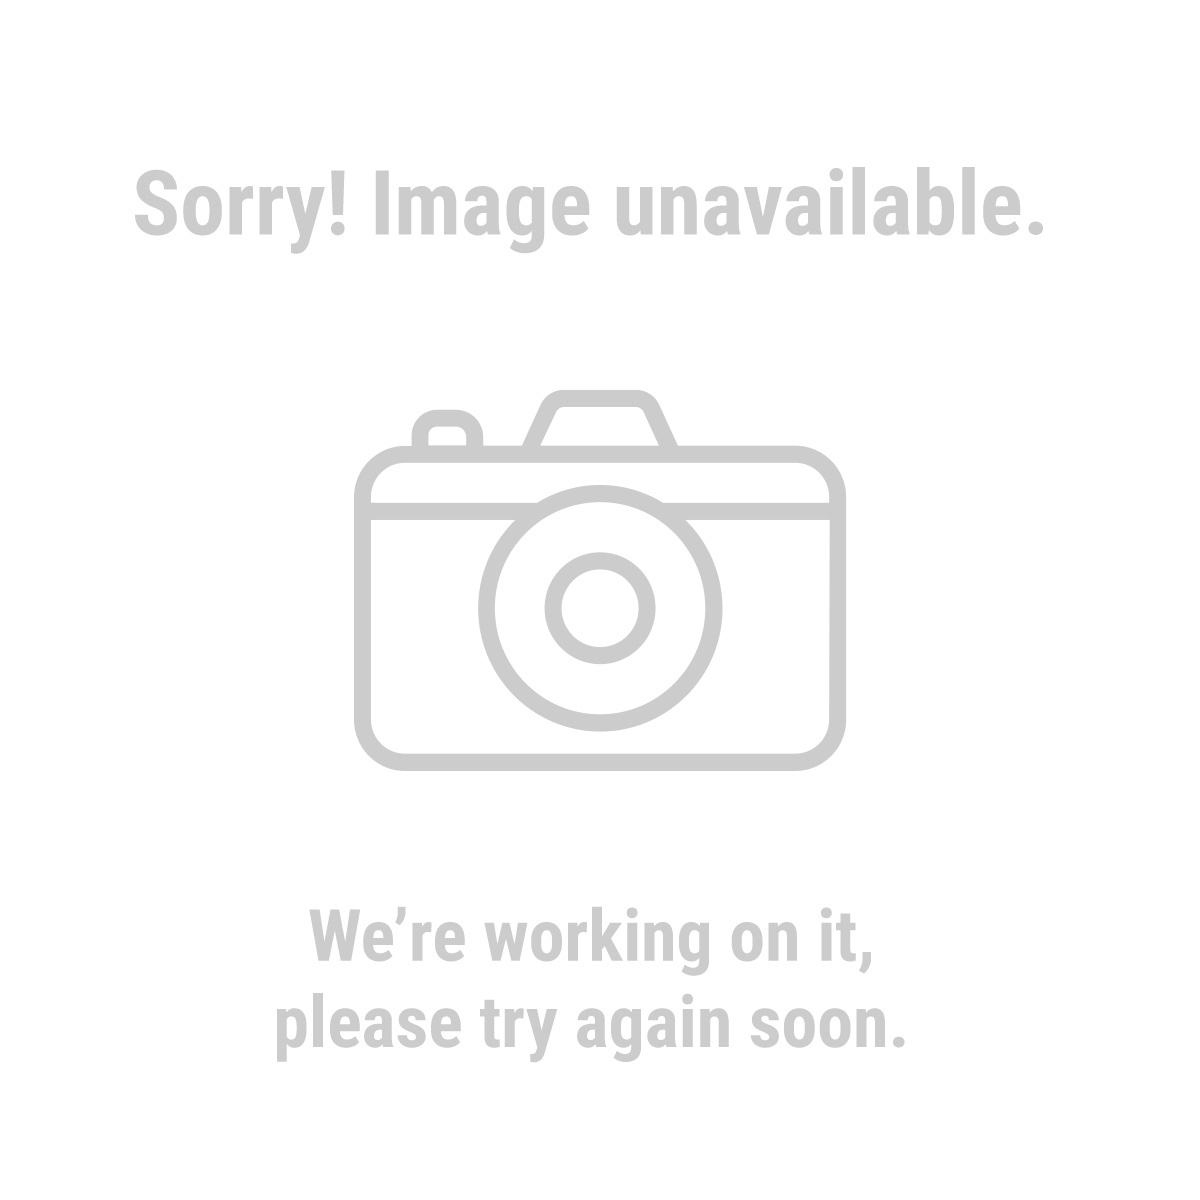 Pittsburgh 610 5 Piece Retaining Ring Pliers Set